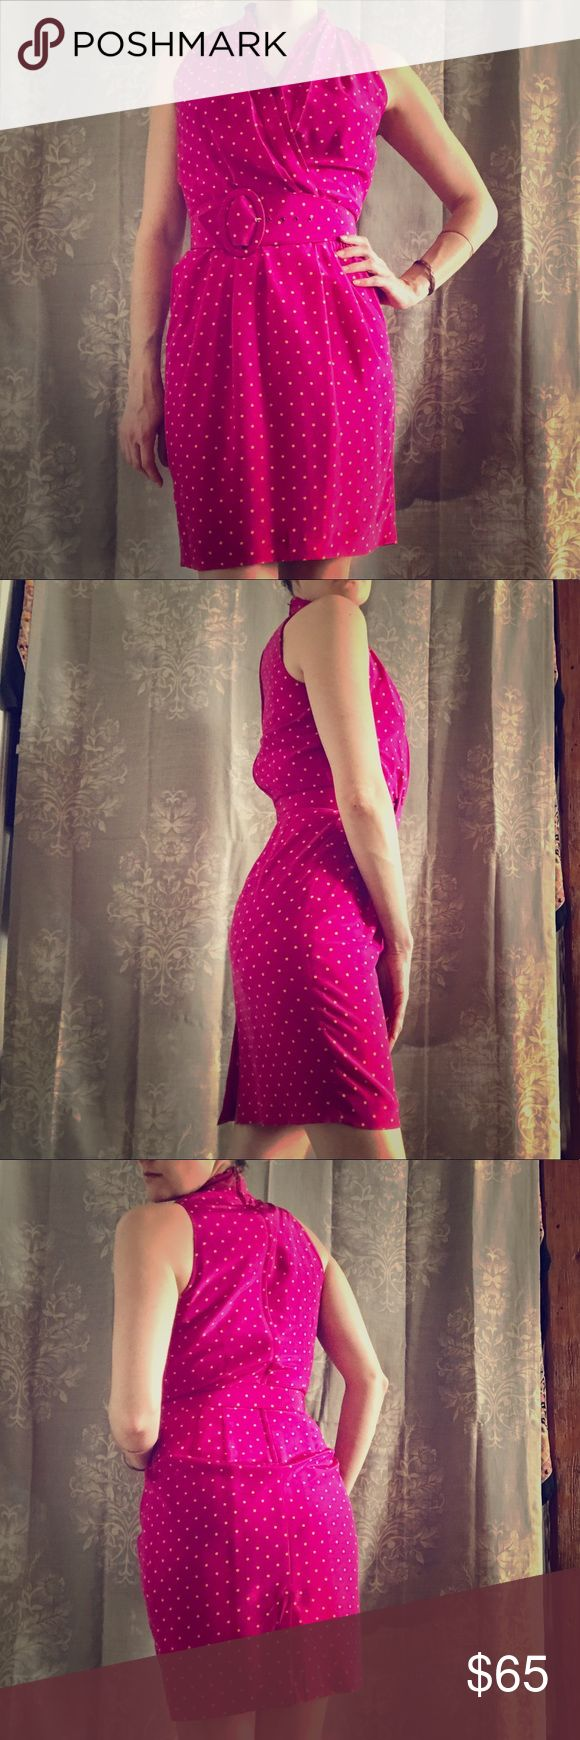 Evan Picone pink polka dot belted cocktail dress Vintage! 100% silk! Bright and sexy!                                  *used/great condition* size 6                                                  -hem on the bottom could use enforcing but not noticeable while wearing. Evan Picone Dresses Midi